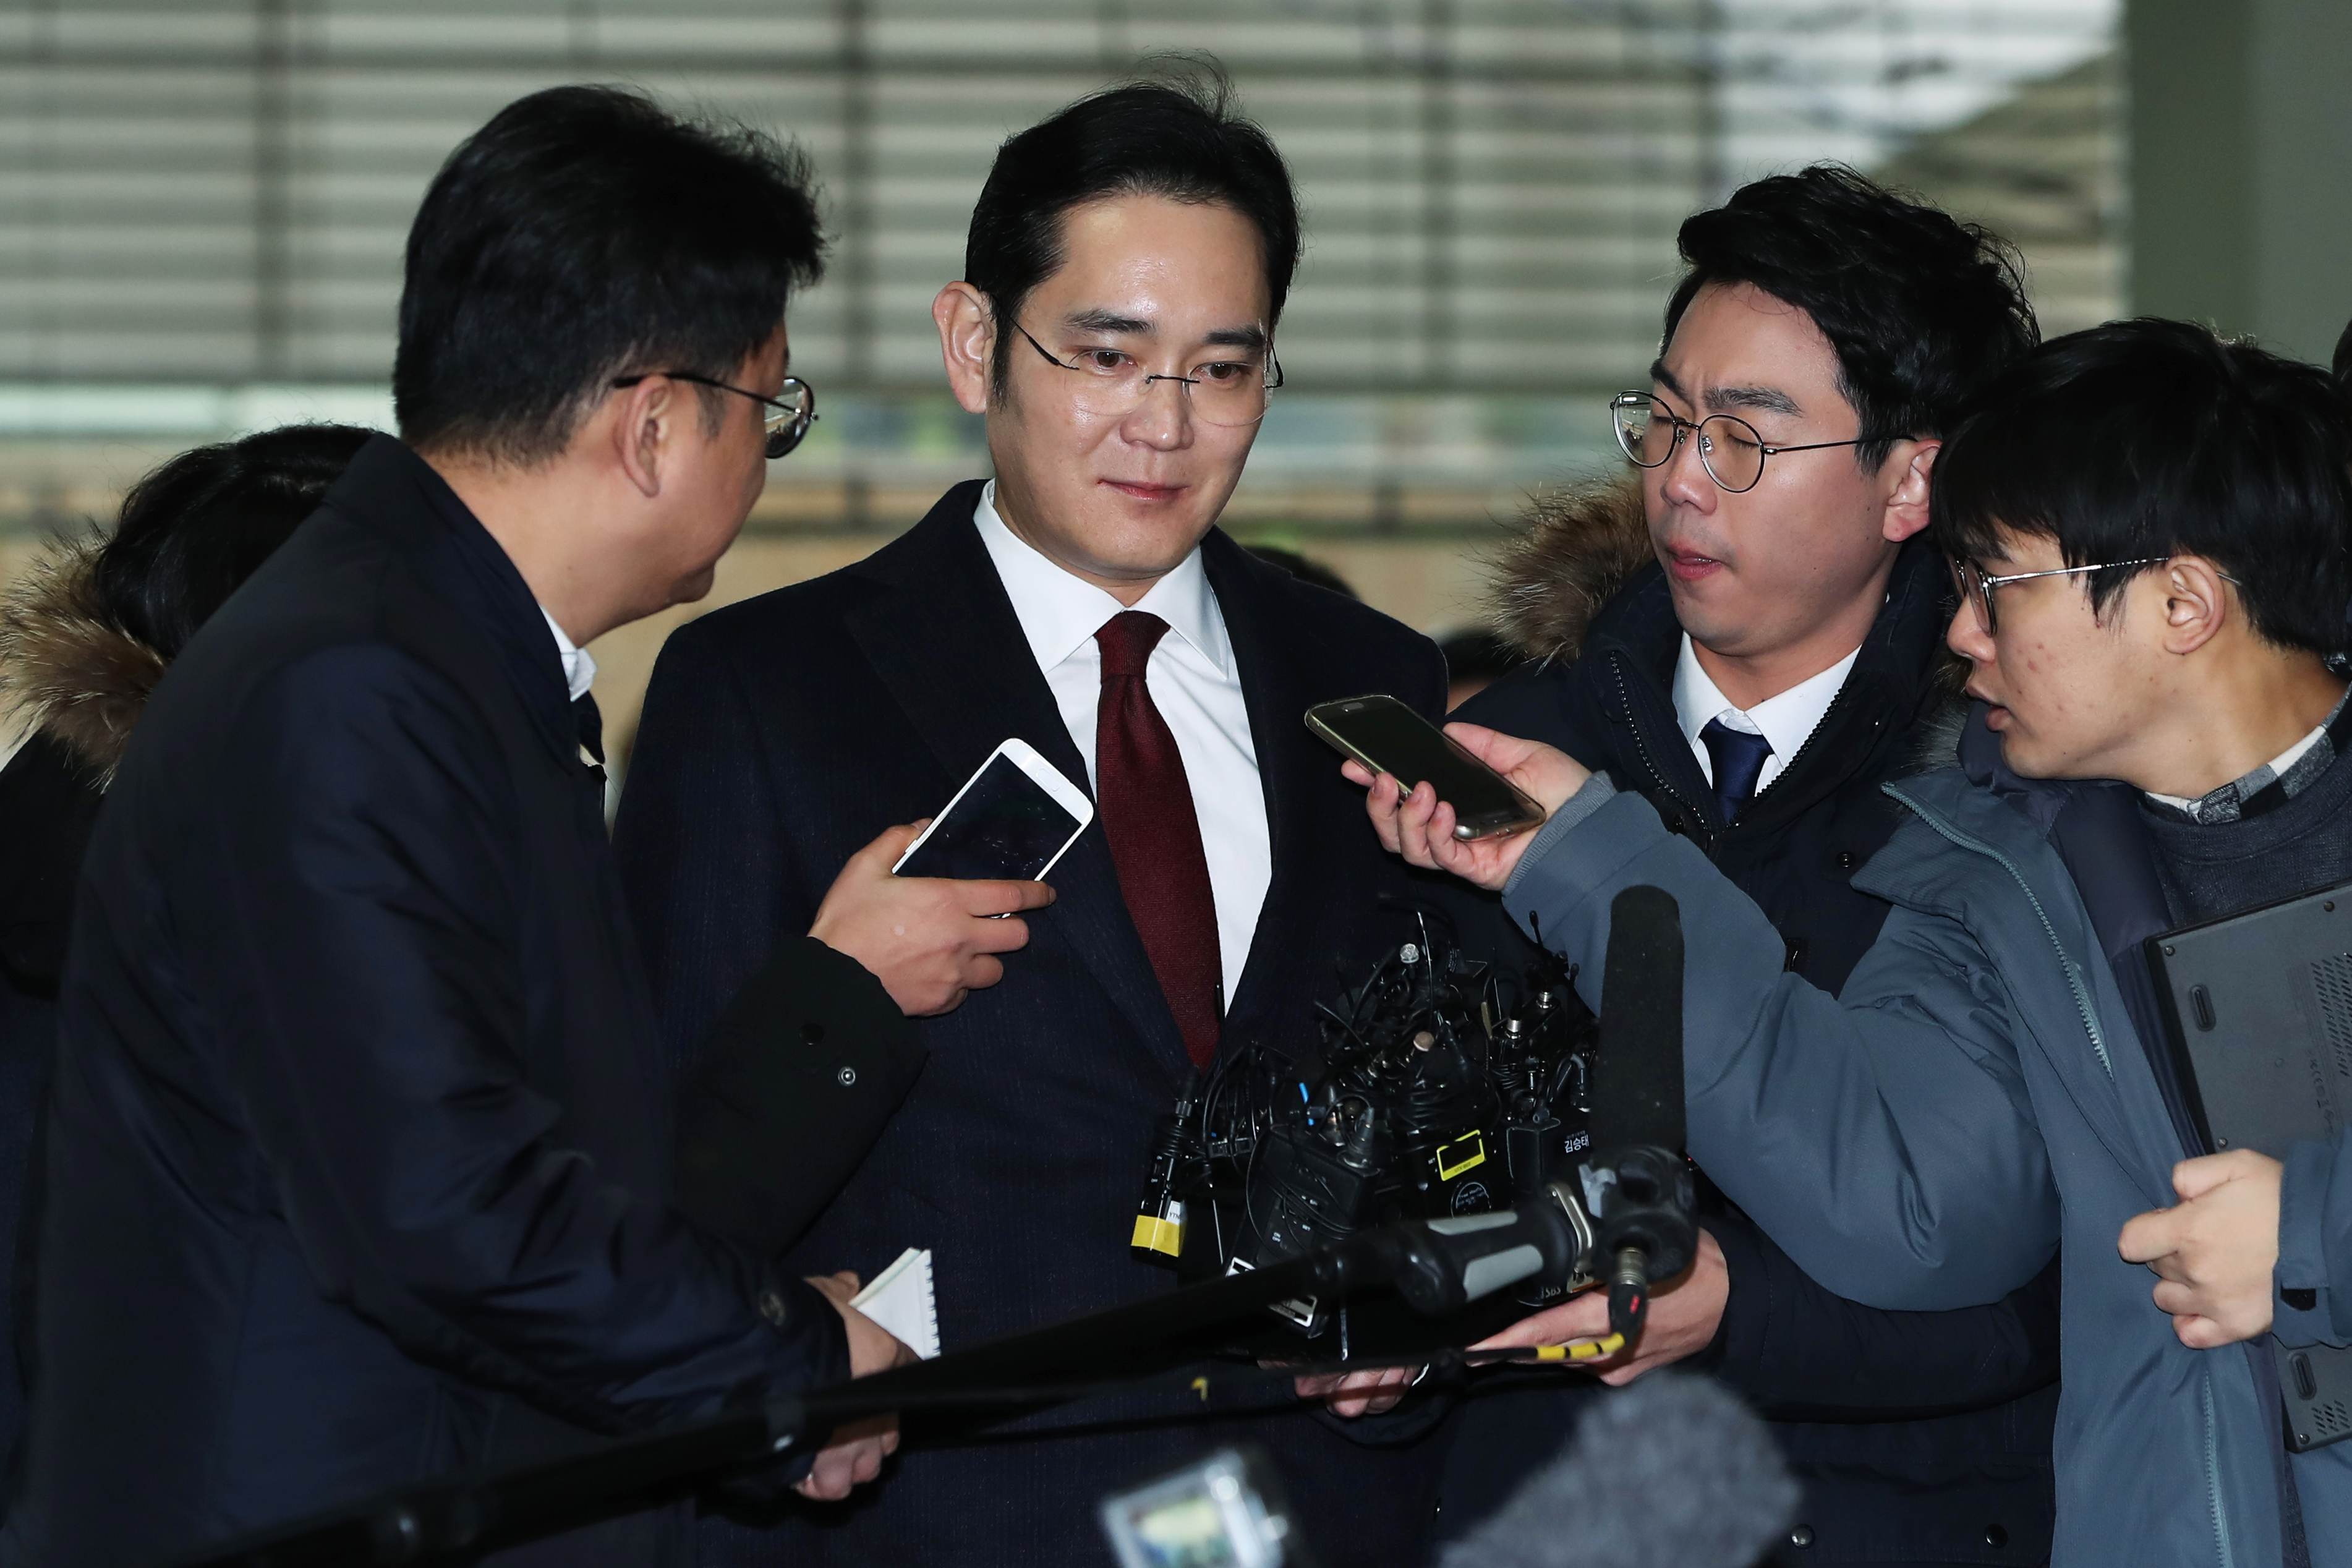 Samsung Vice Chairman Jay Y. Lee Summoned to Special Prosecutor's Office in Bribery Probe